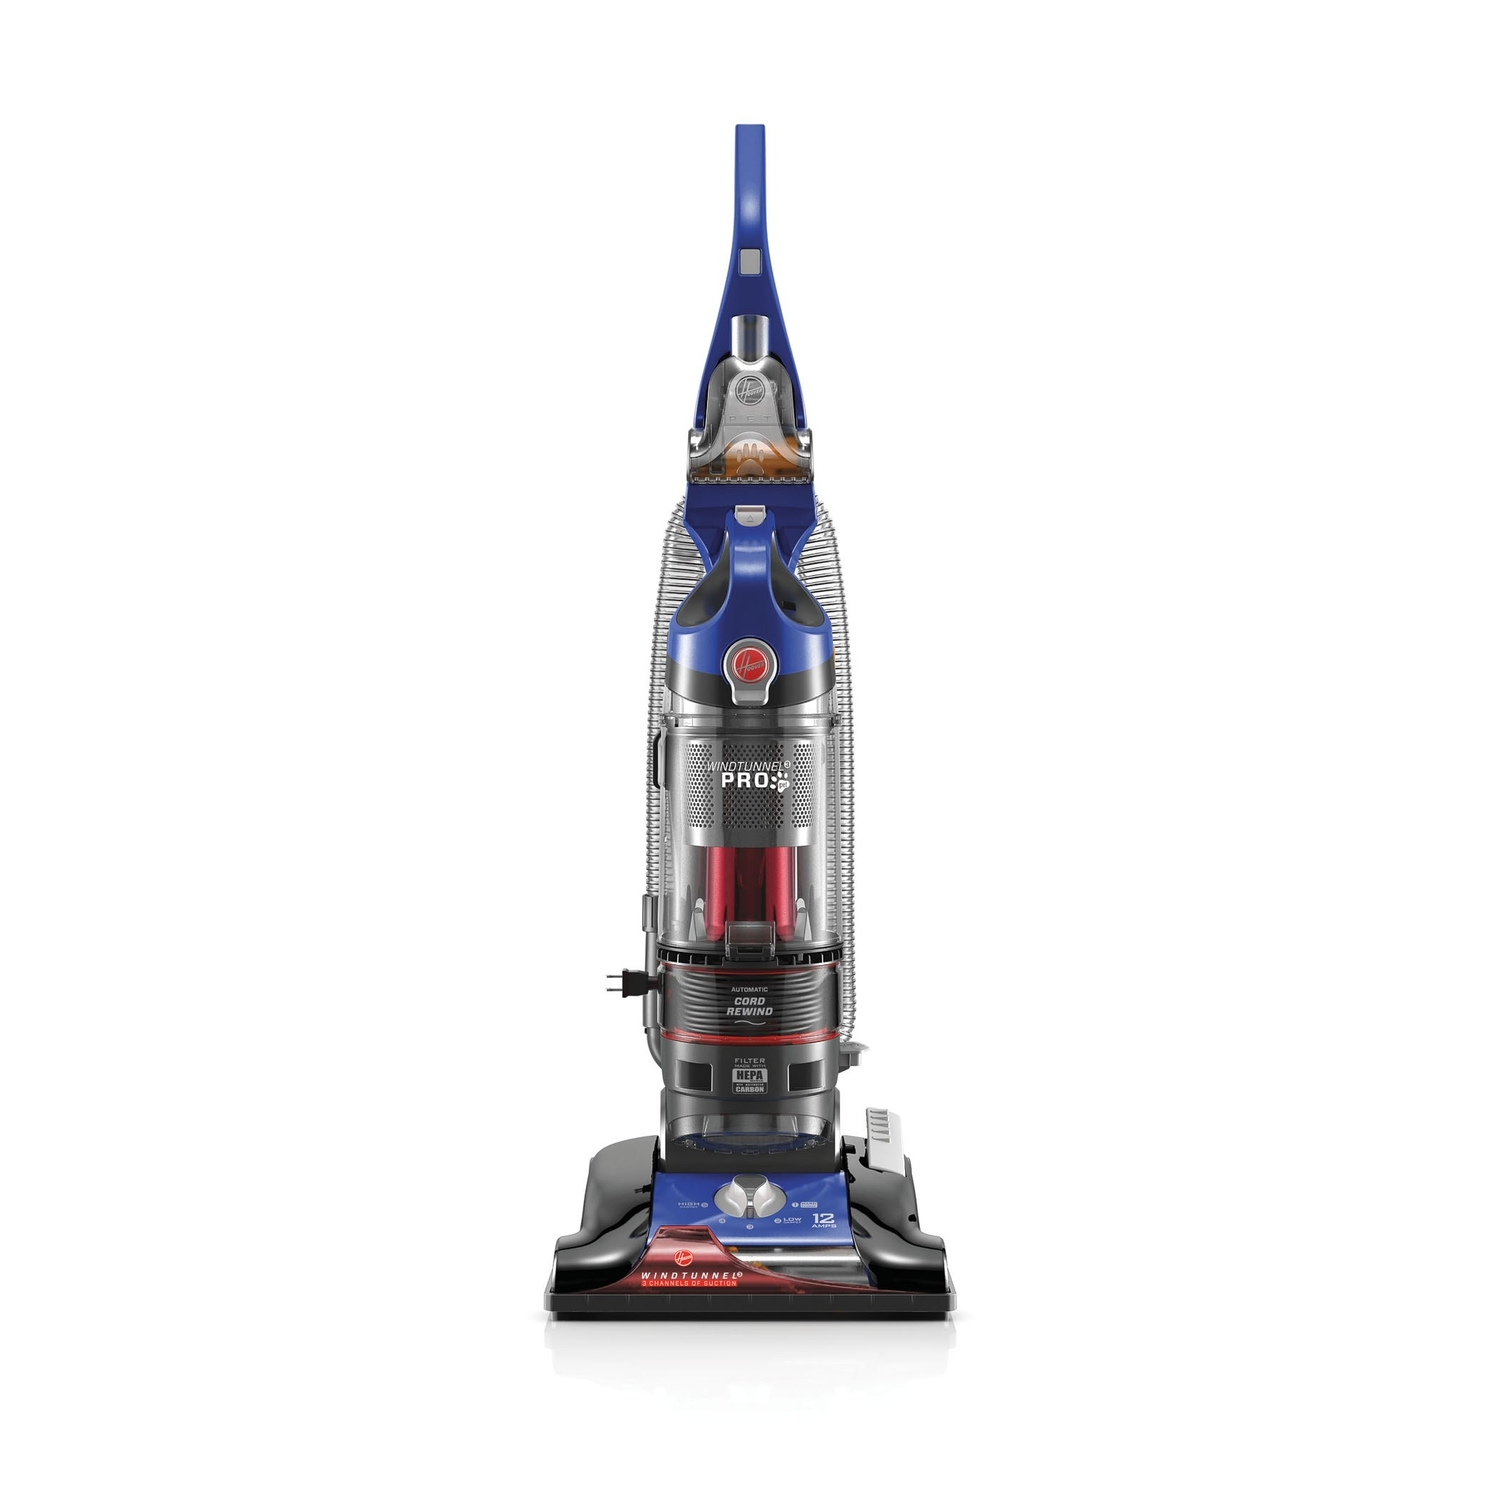 Hoover  Windtunnel 3 Pro Pet  Bagless  Upright Vacuum  12 amps HEPA  Blue